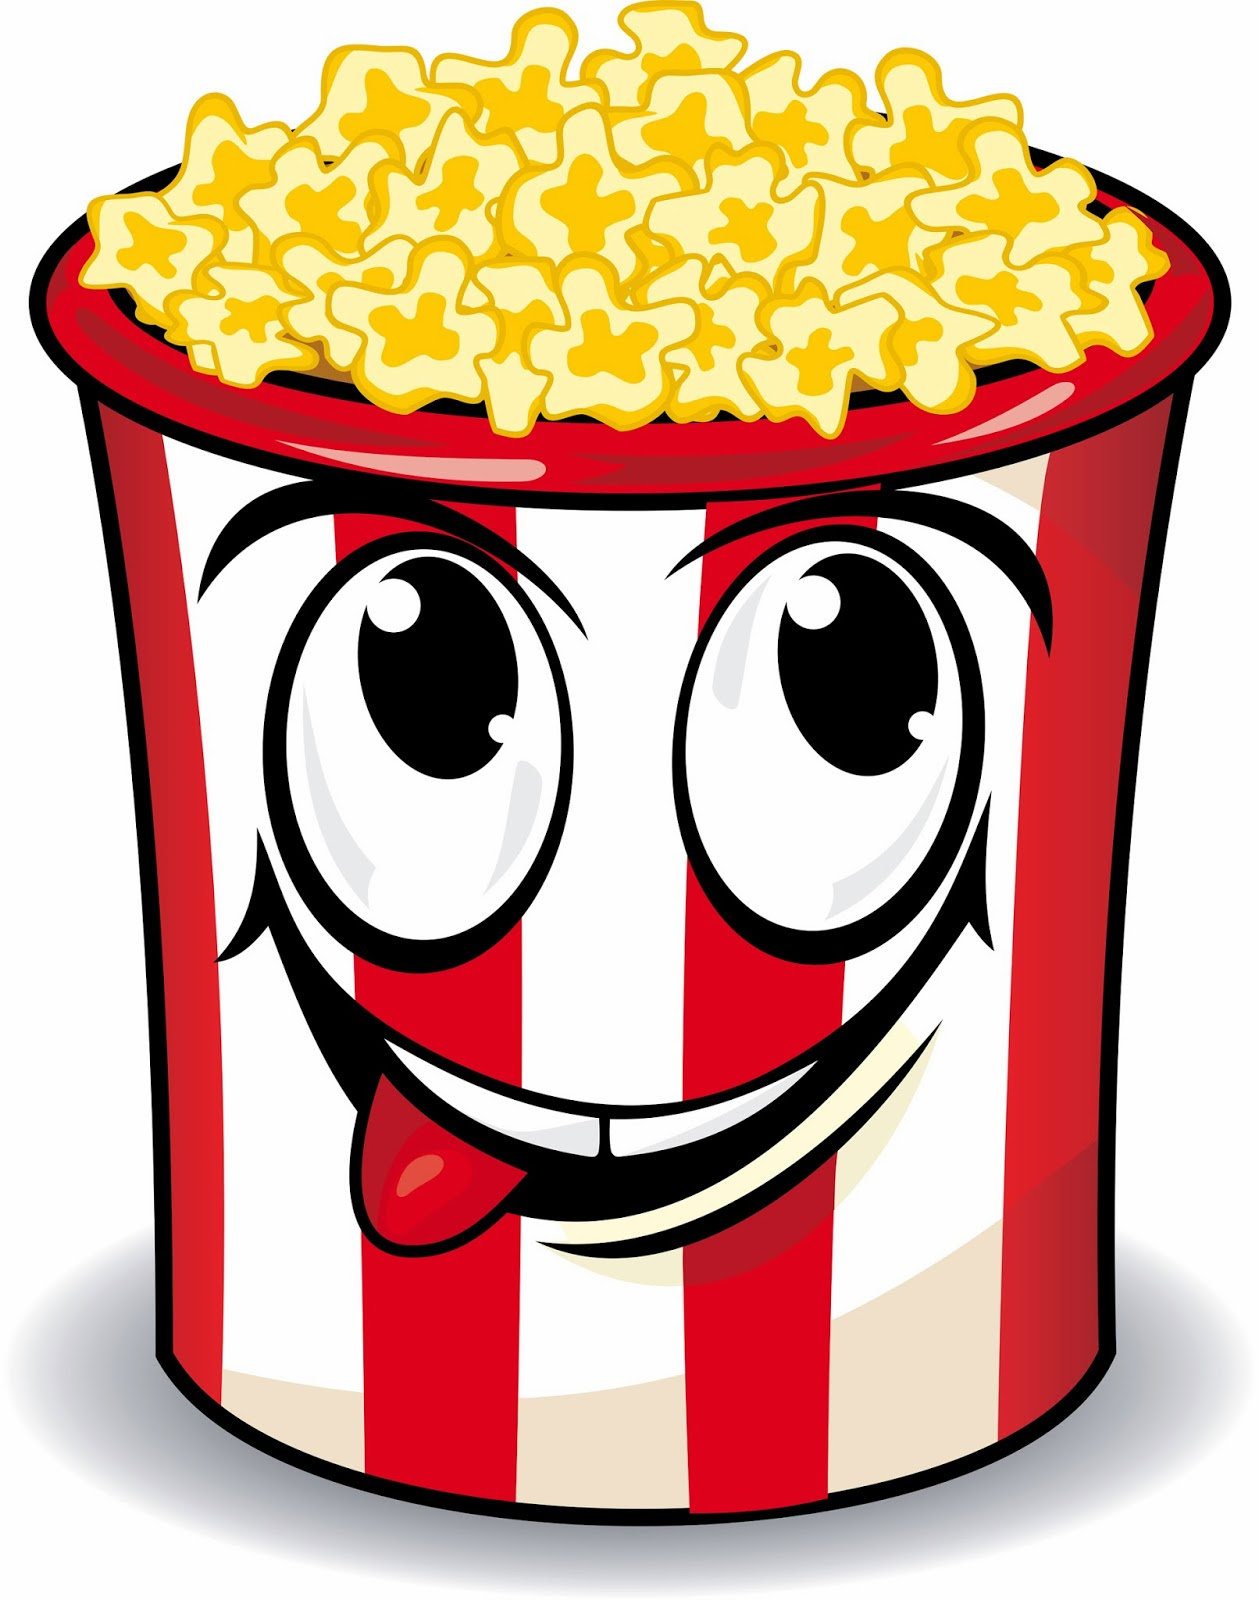 Popcorn clipart popcorn popping Free Clipart Popcorn Cliparting images